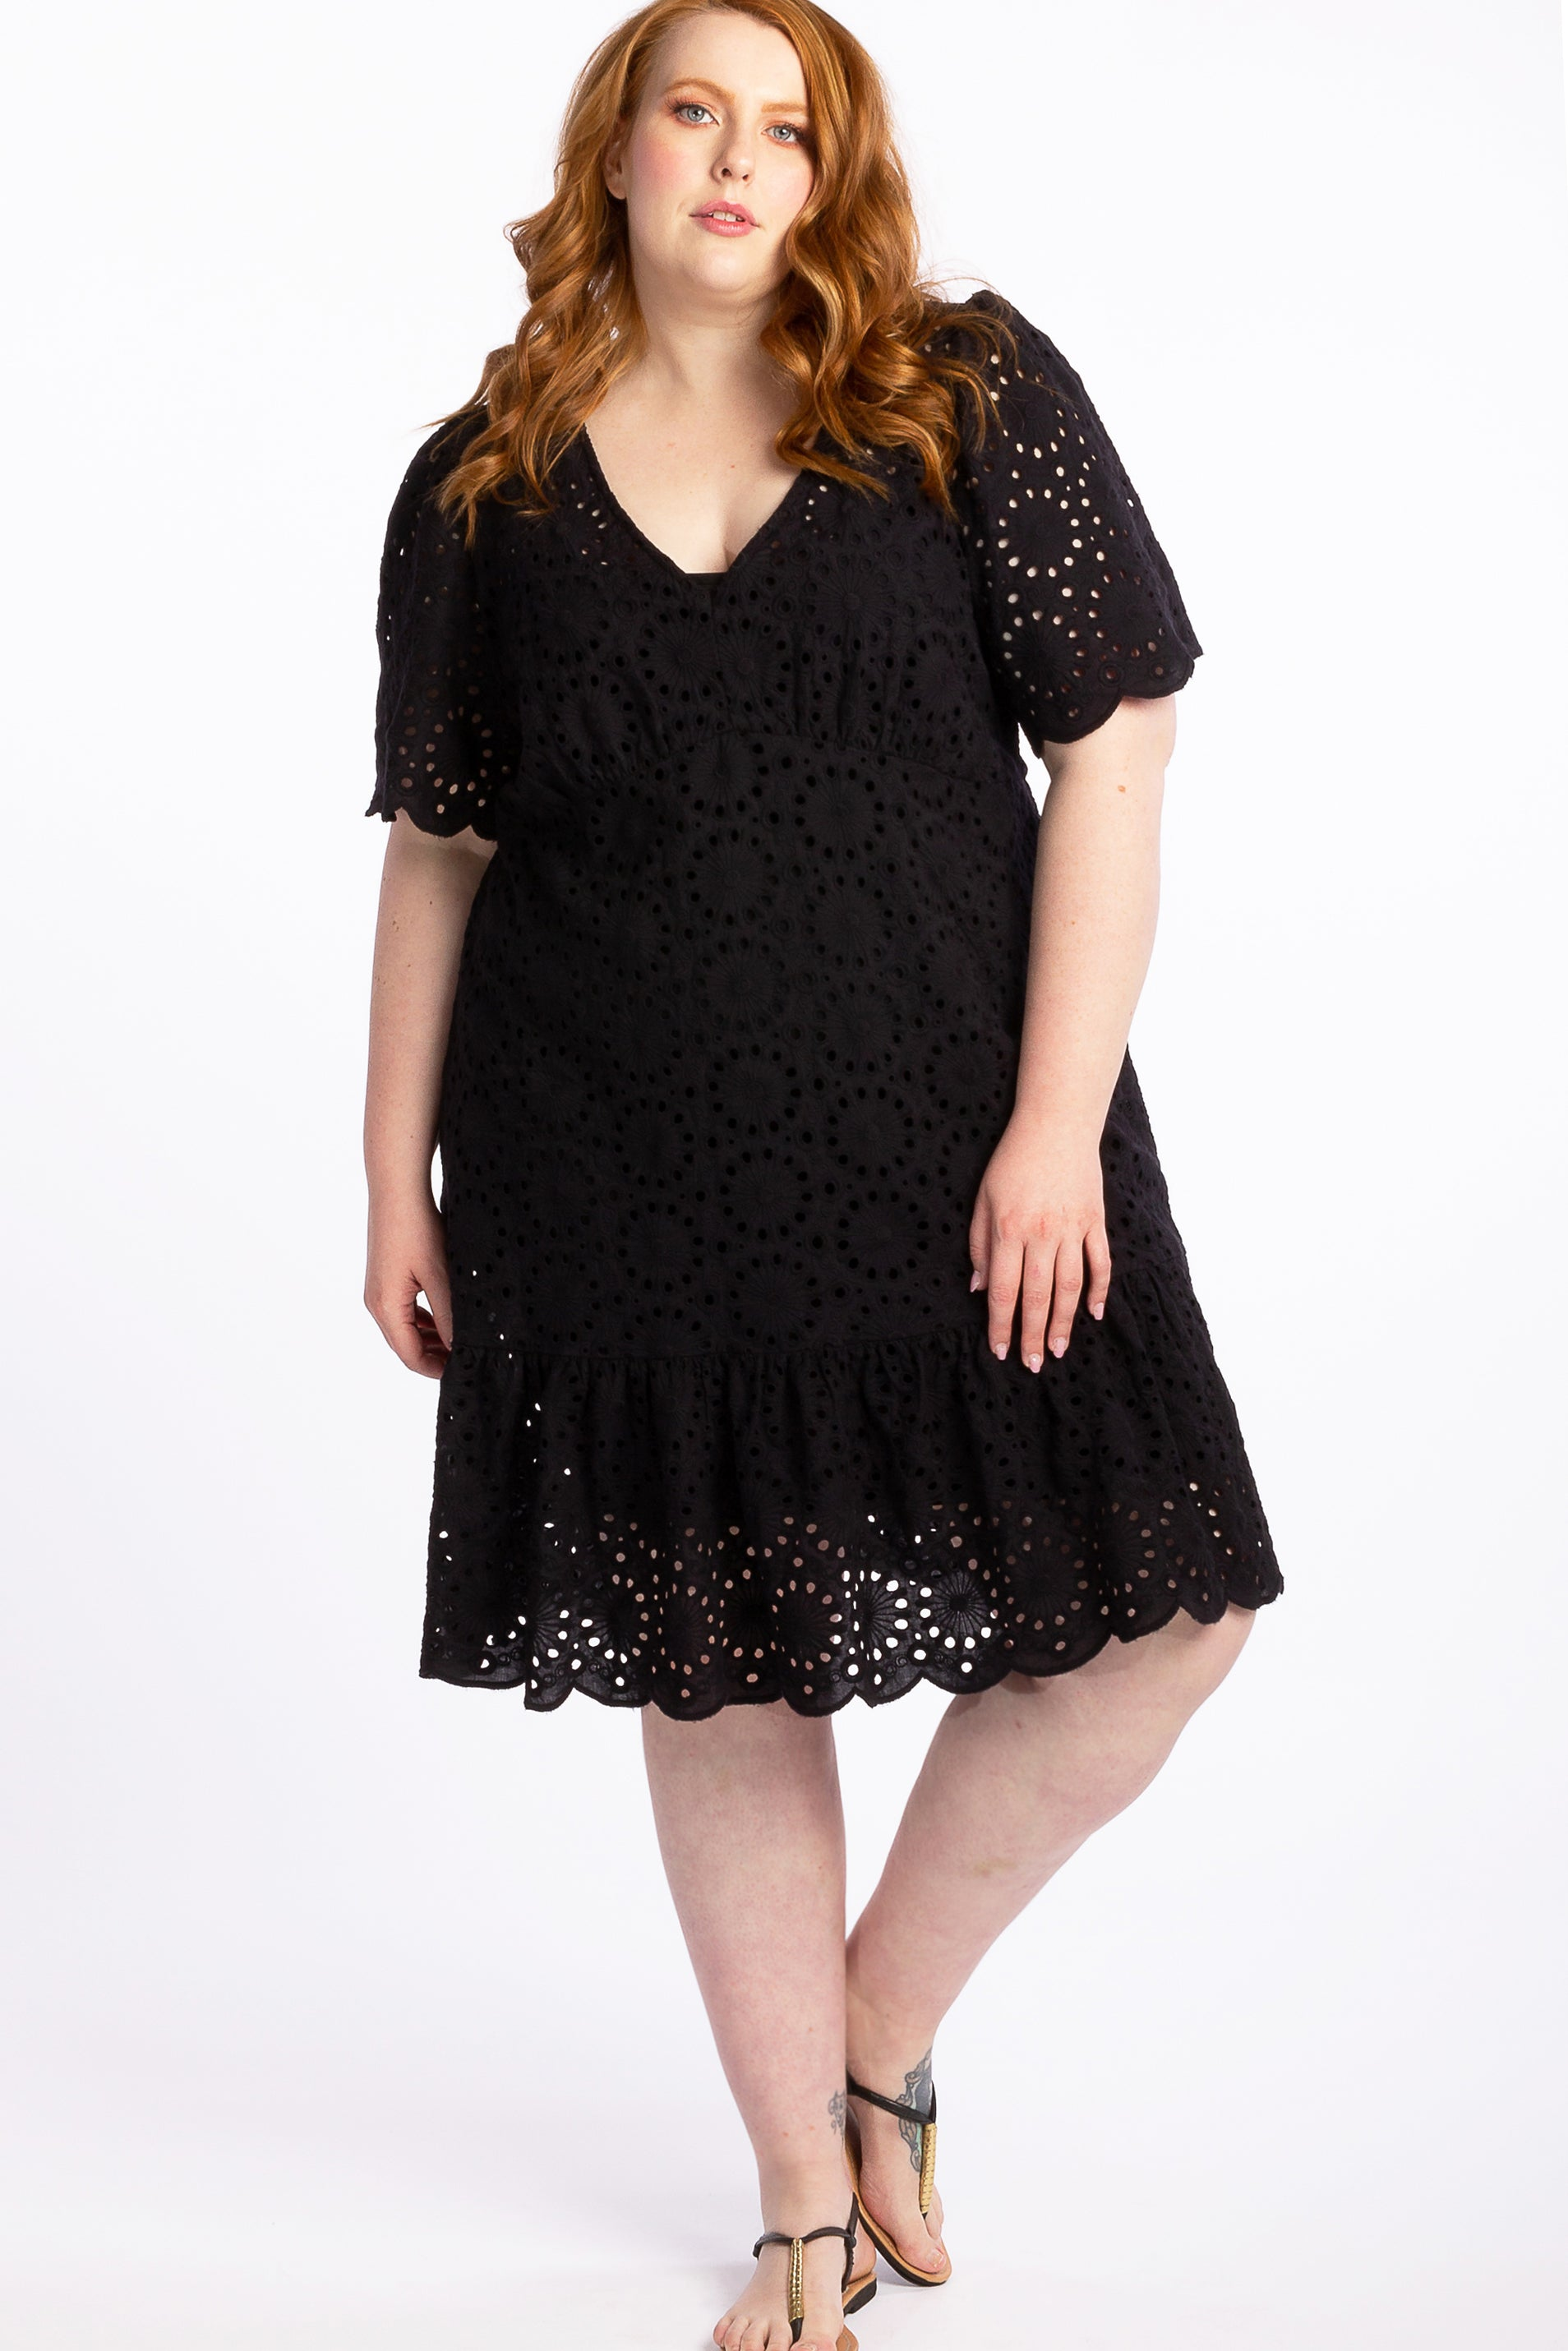 Spirit In Flight Broidery Dress - Black - Harlow